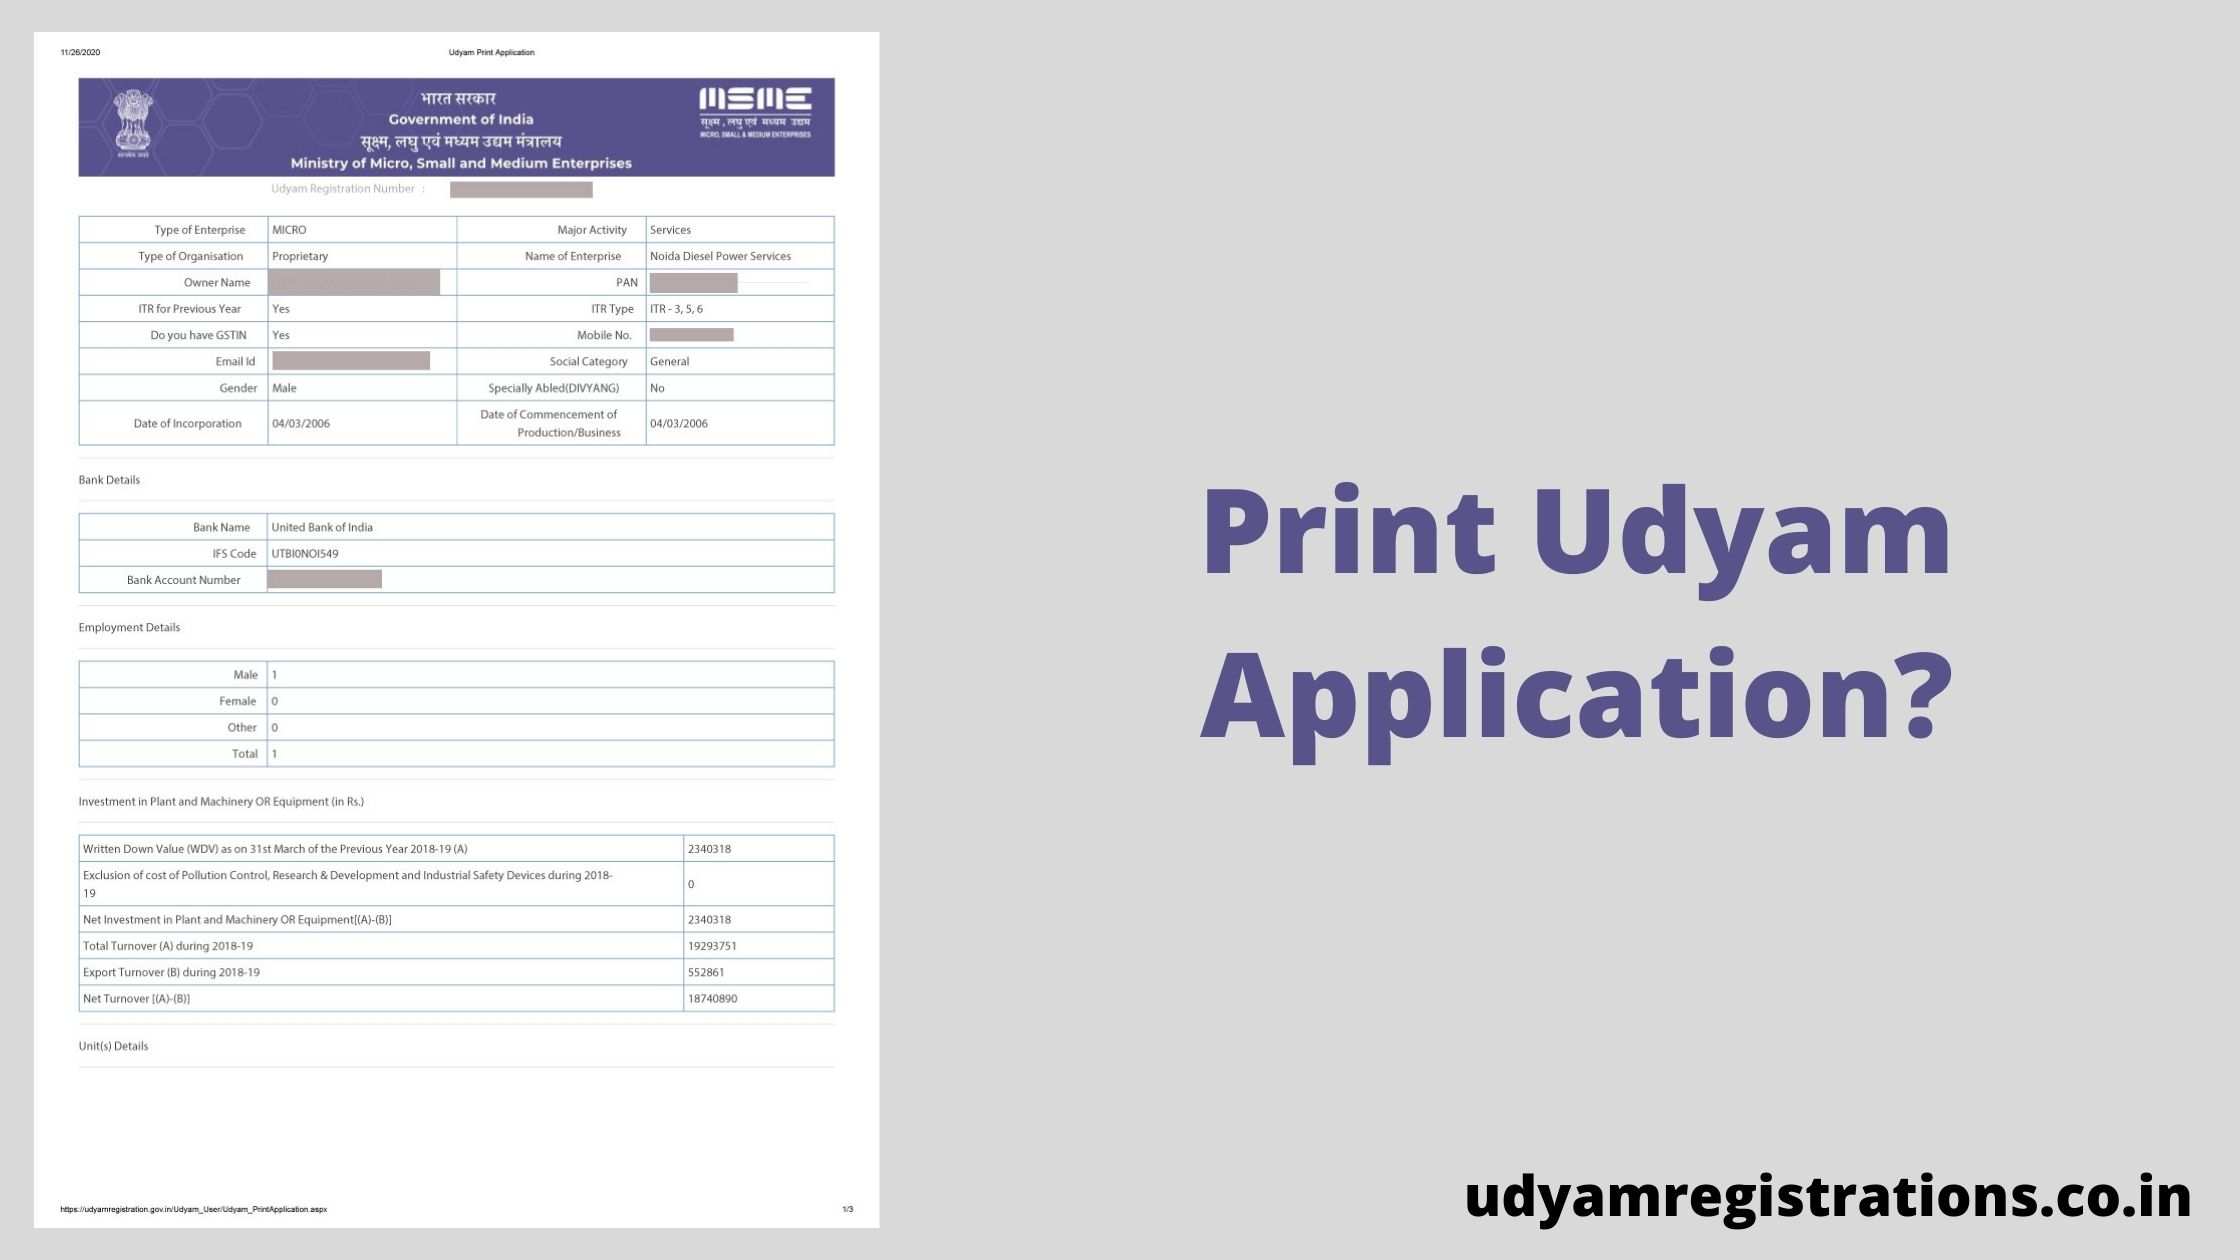 How to Print Udyam Application?